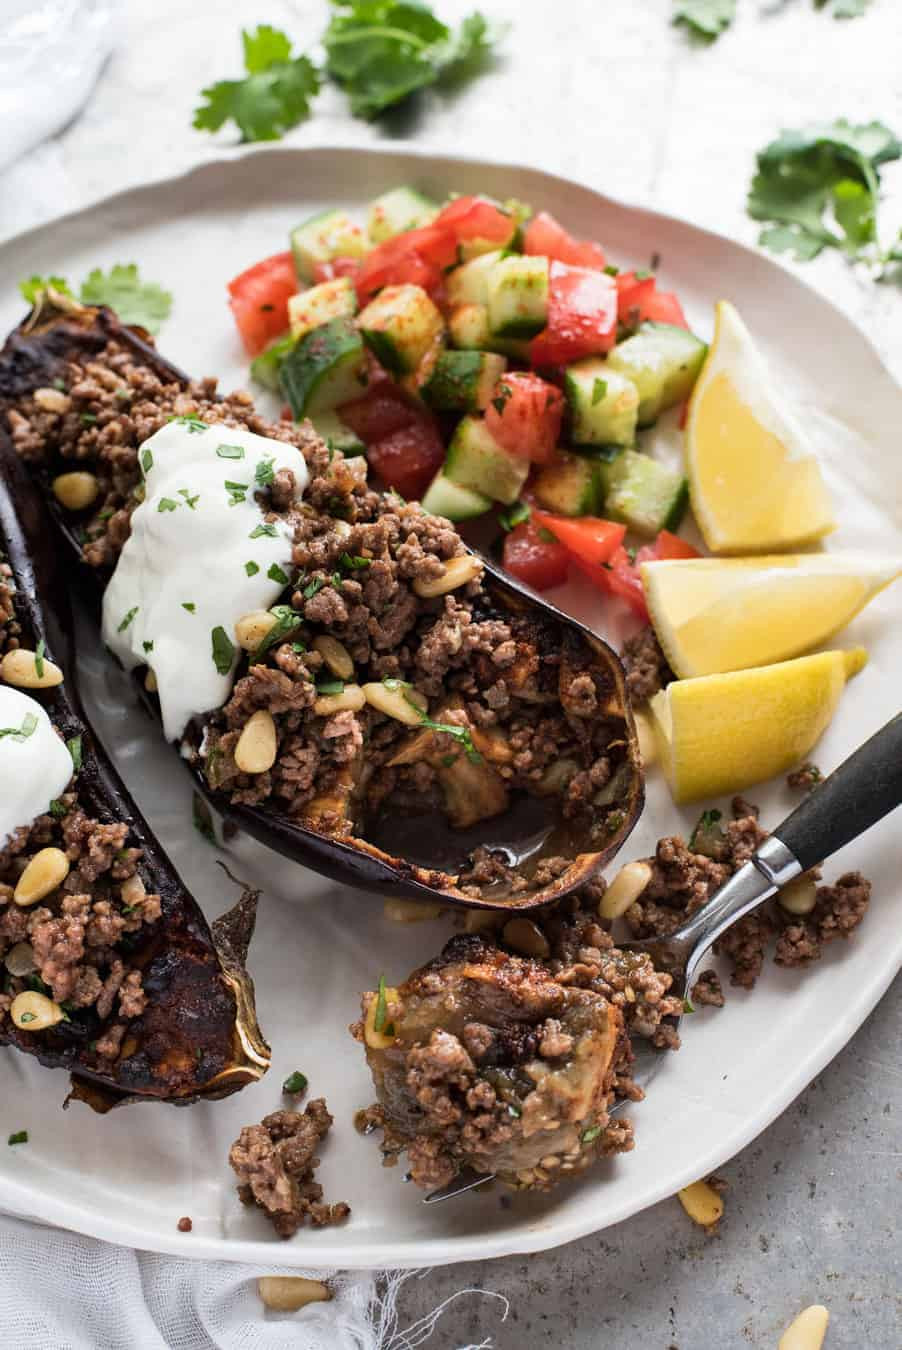 Healthy Dinner With Ground Beef  Moroccan Baked Eggplant with Beef